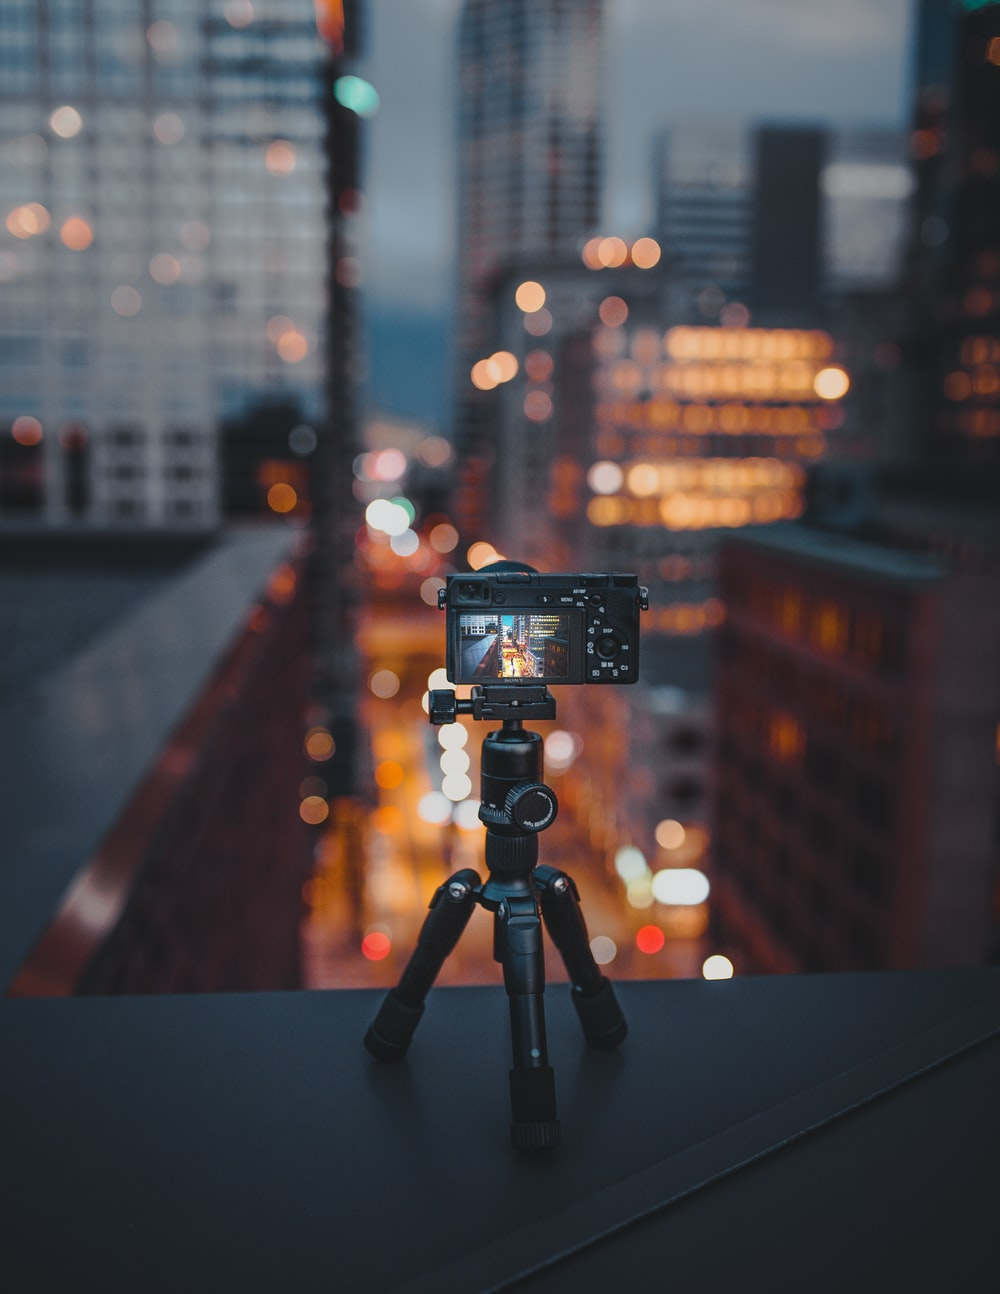 camera on tripod on building roof ledge at the city during night